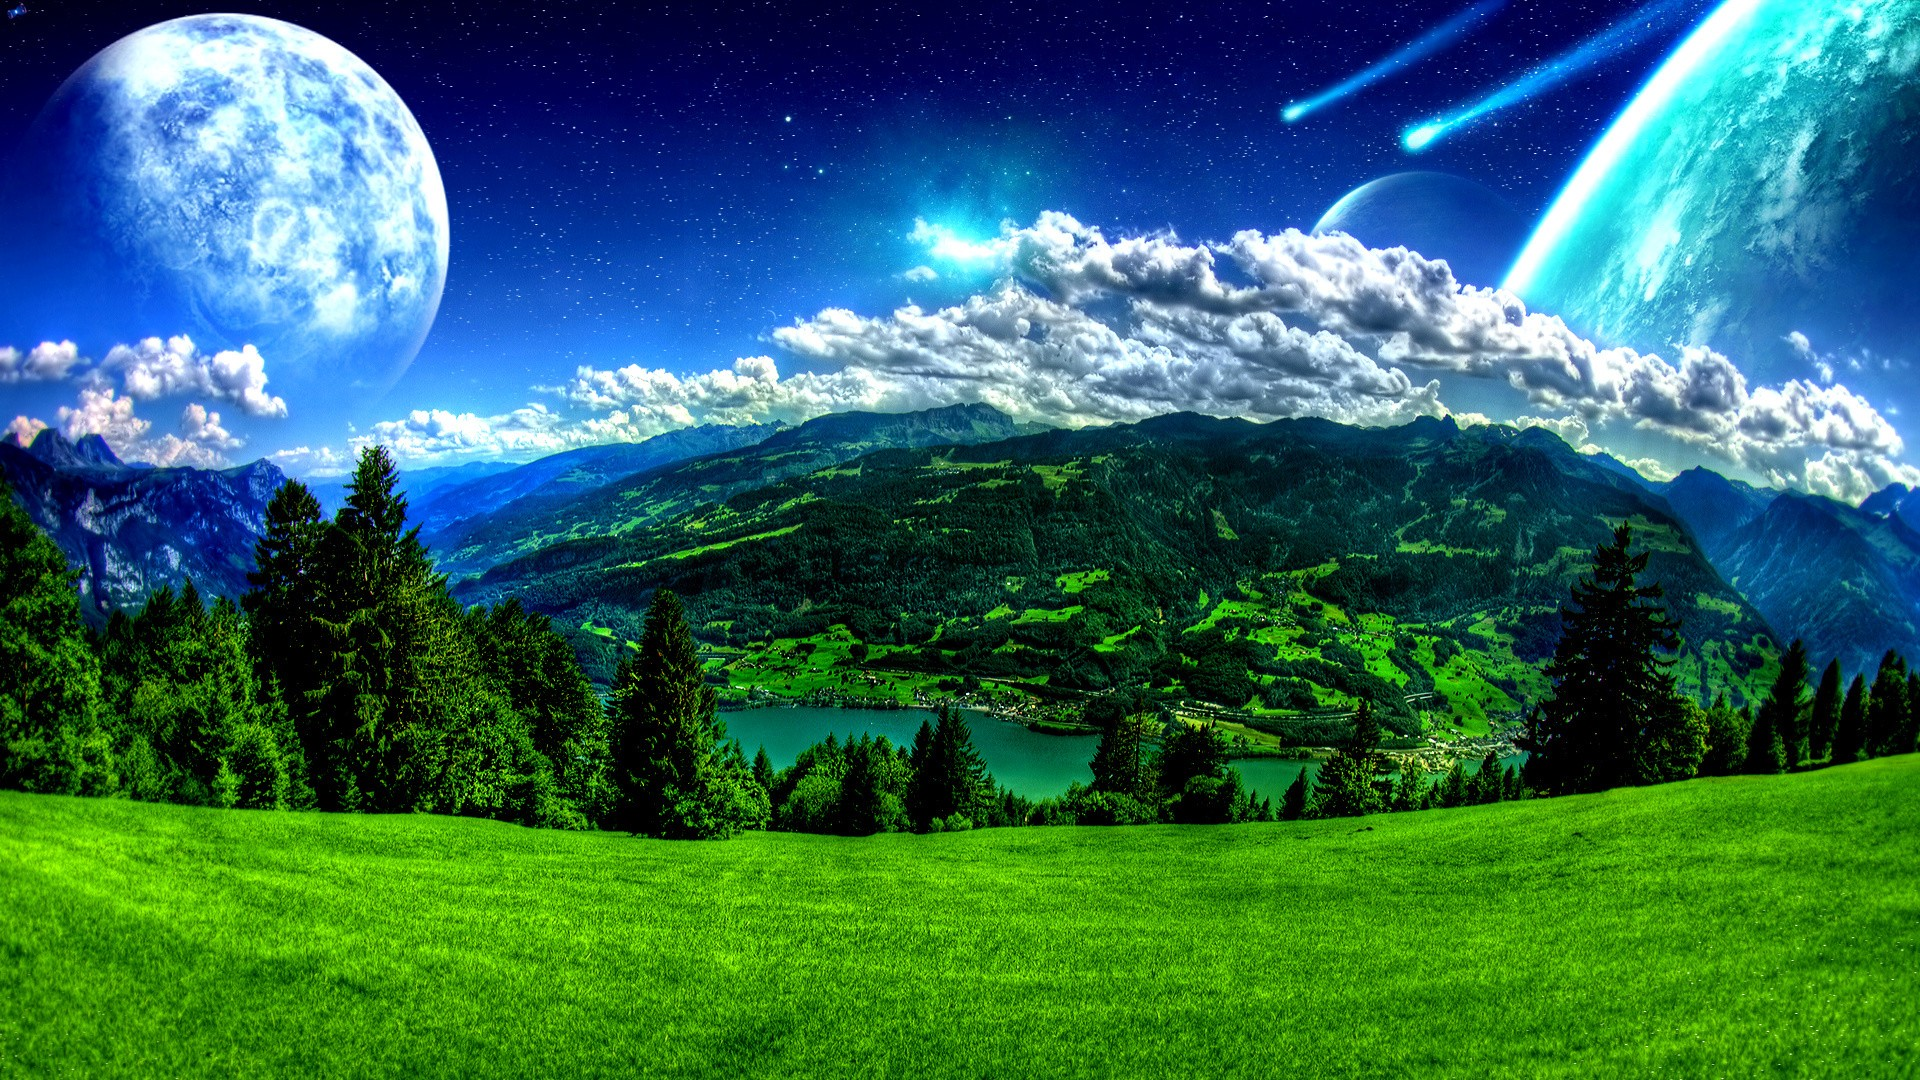 1920x1080 Landscapes Outer wallpaper 1920x1080